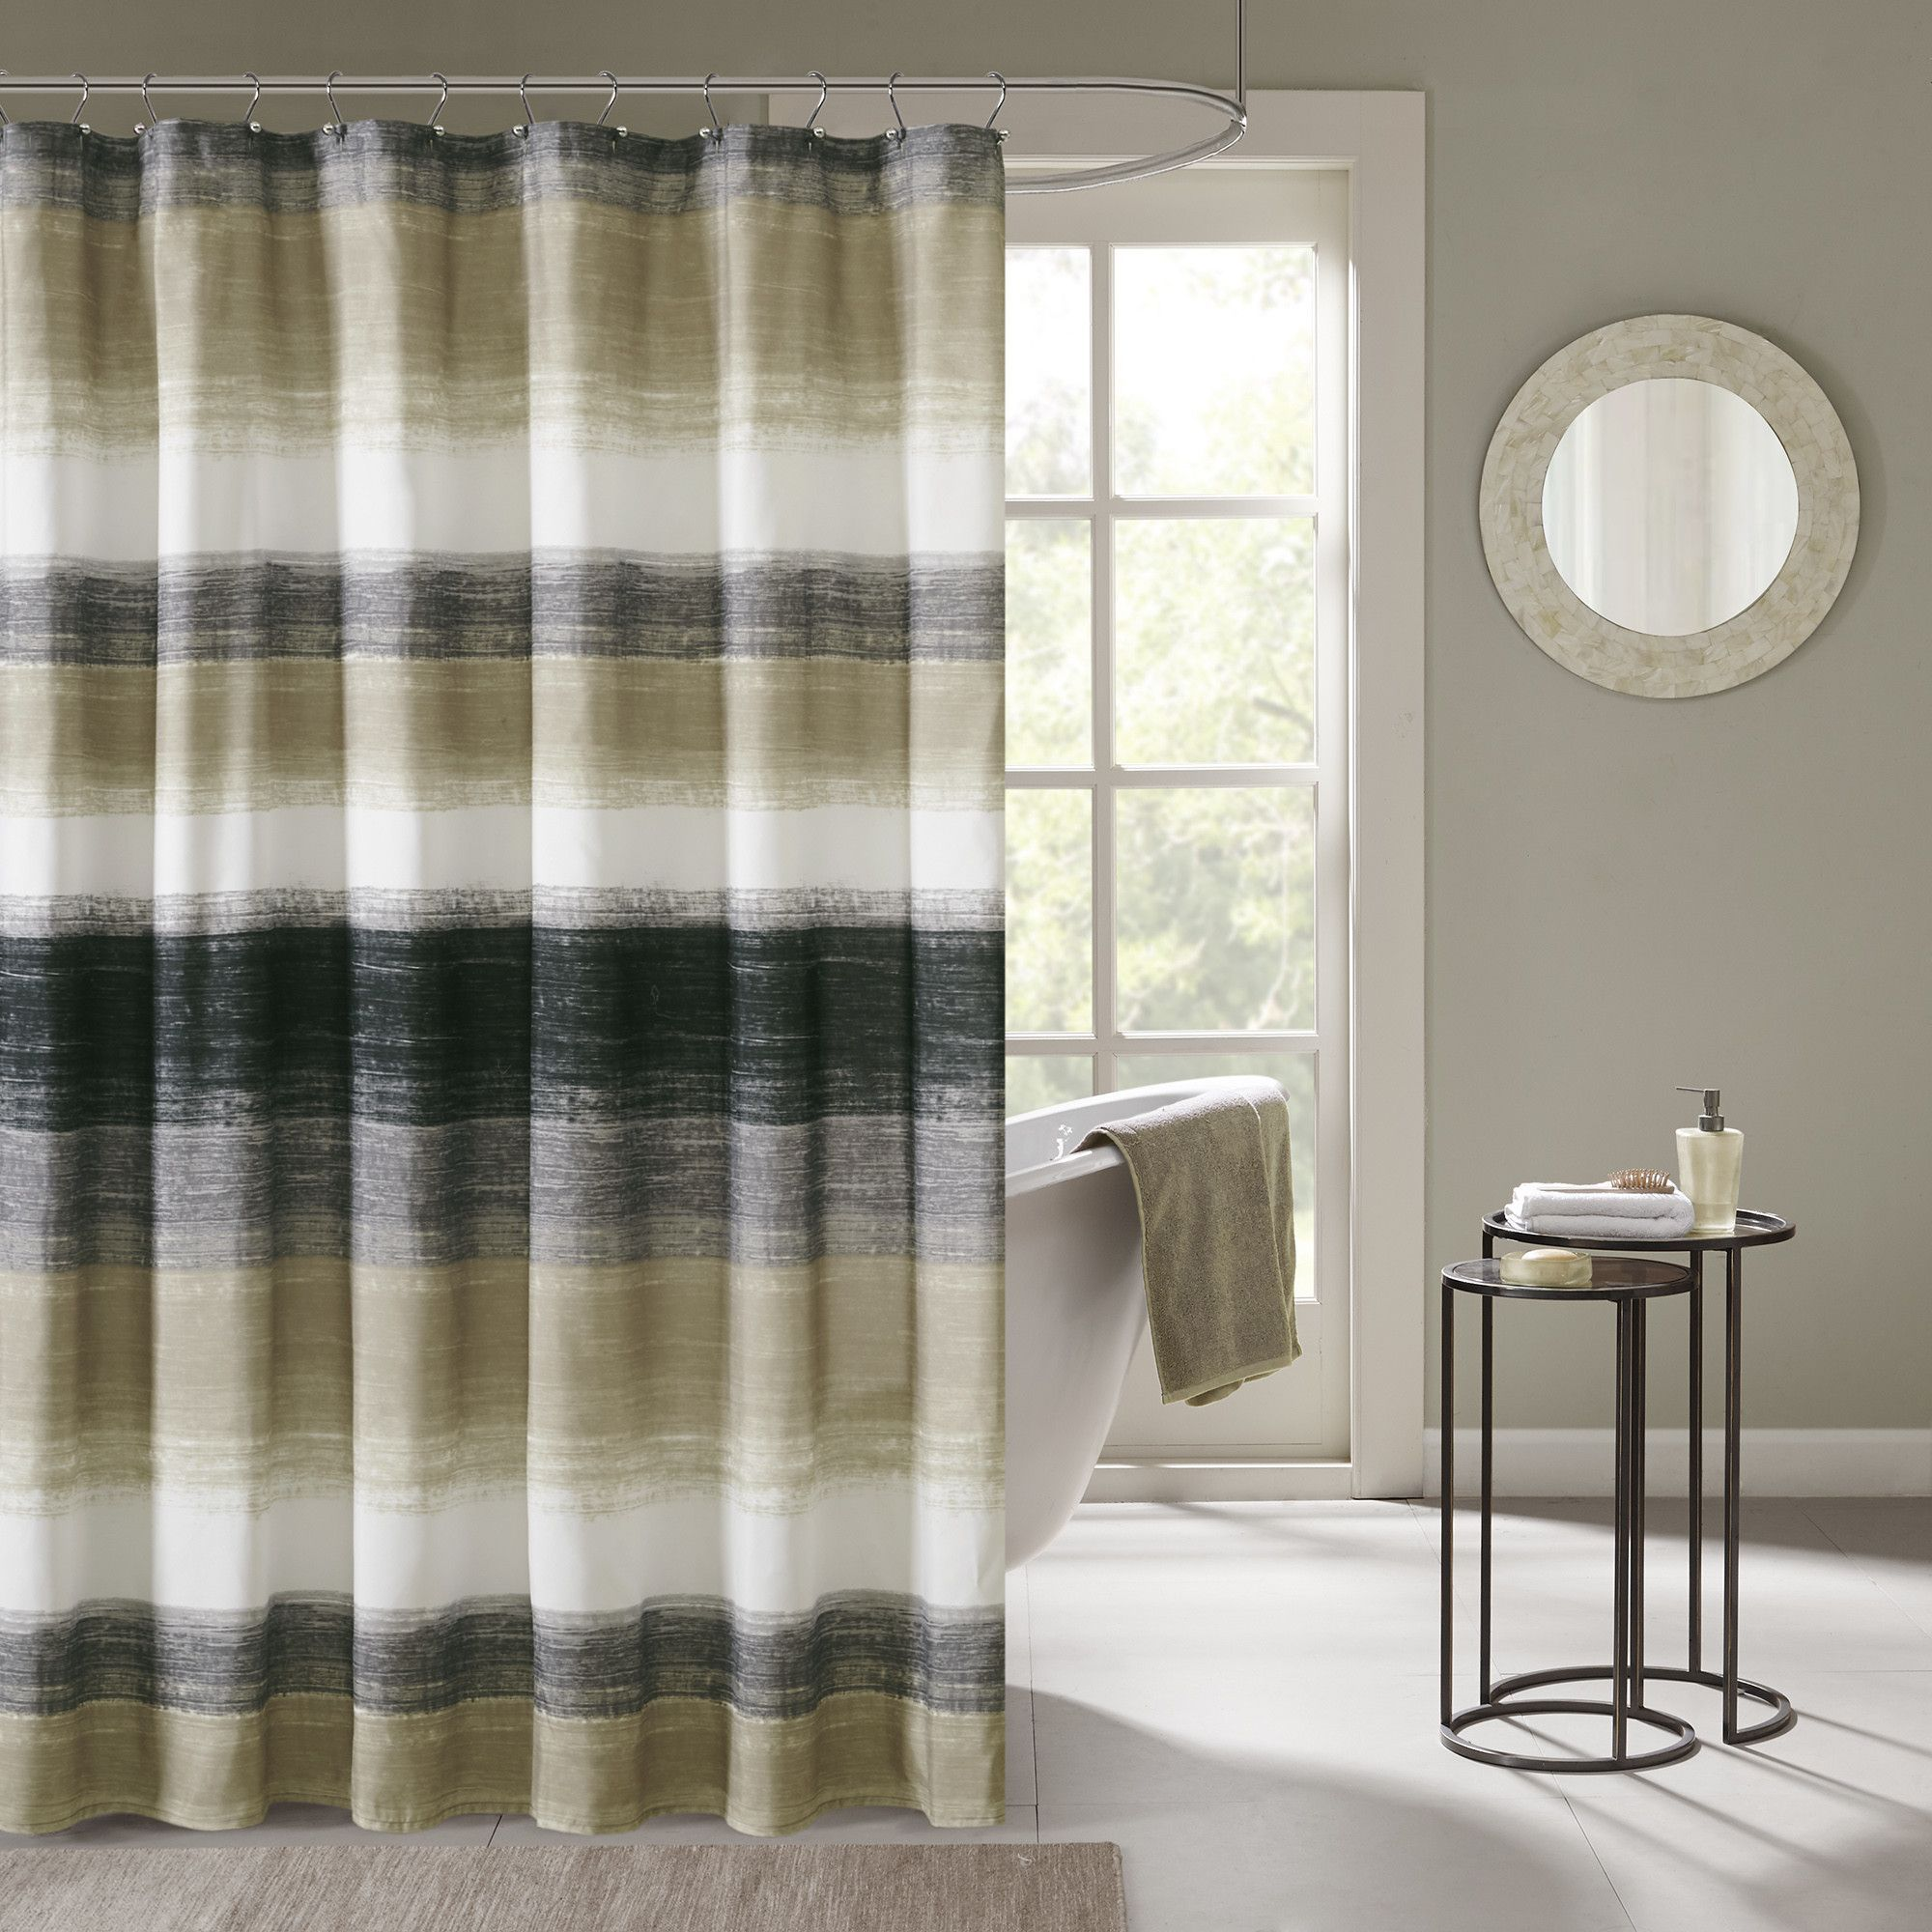 Create An Earthy Bathroom With This Madison Park Essentials Barrett Shower Curtain In Taupe